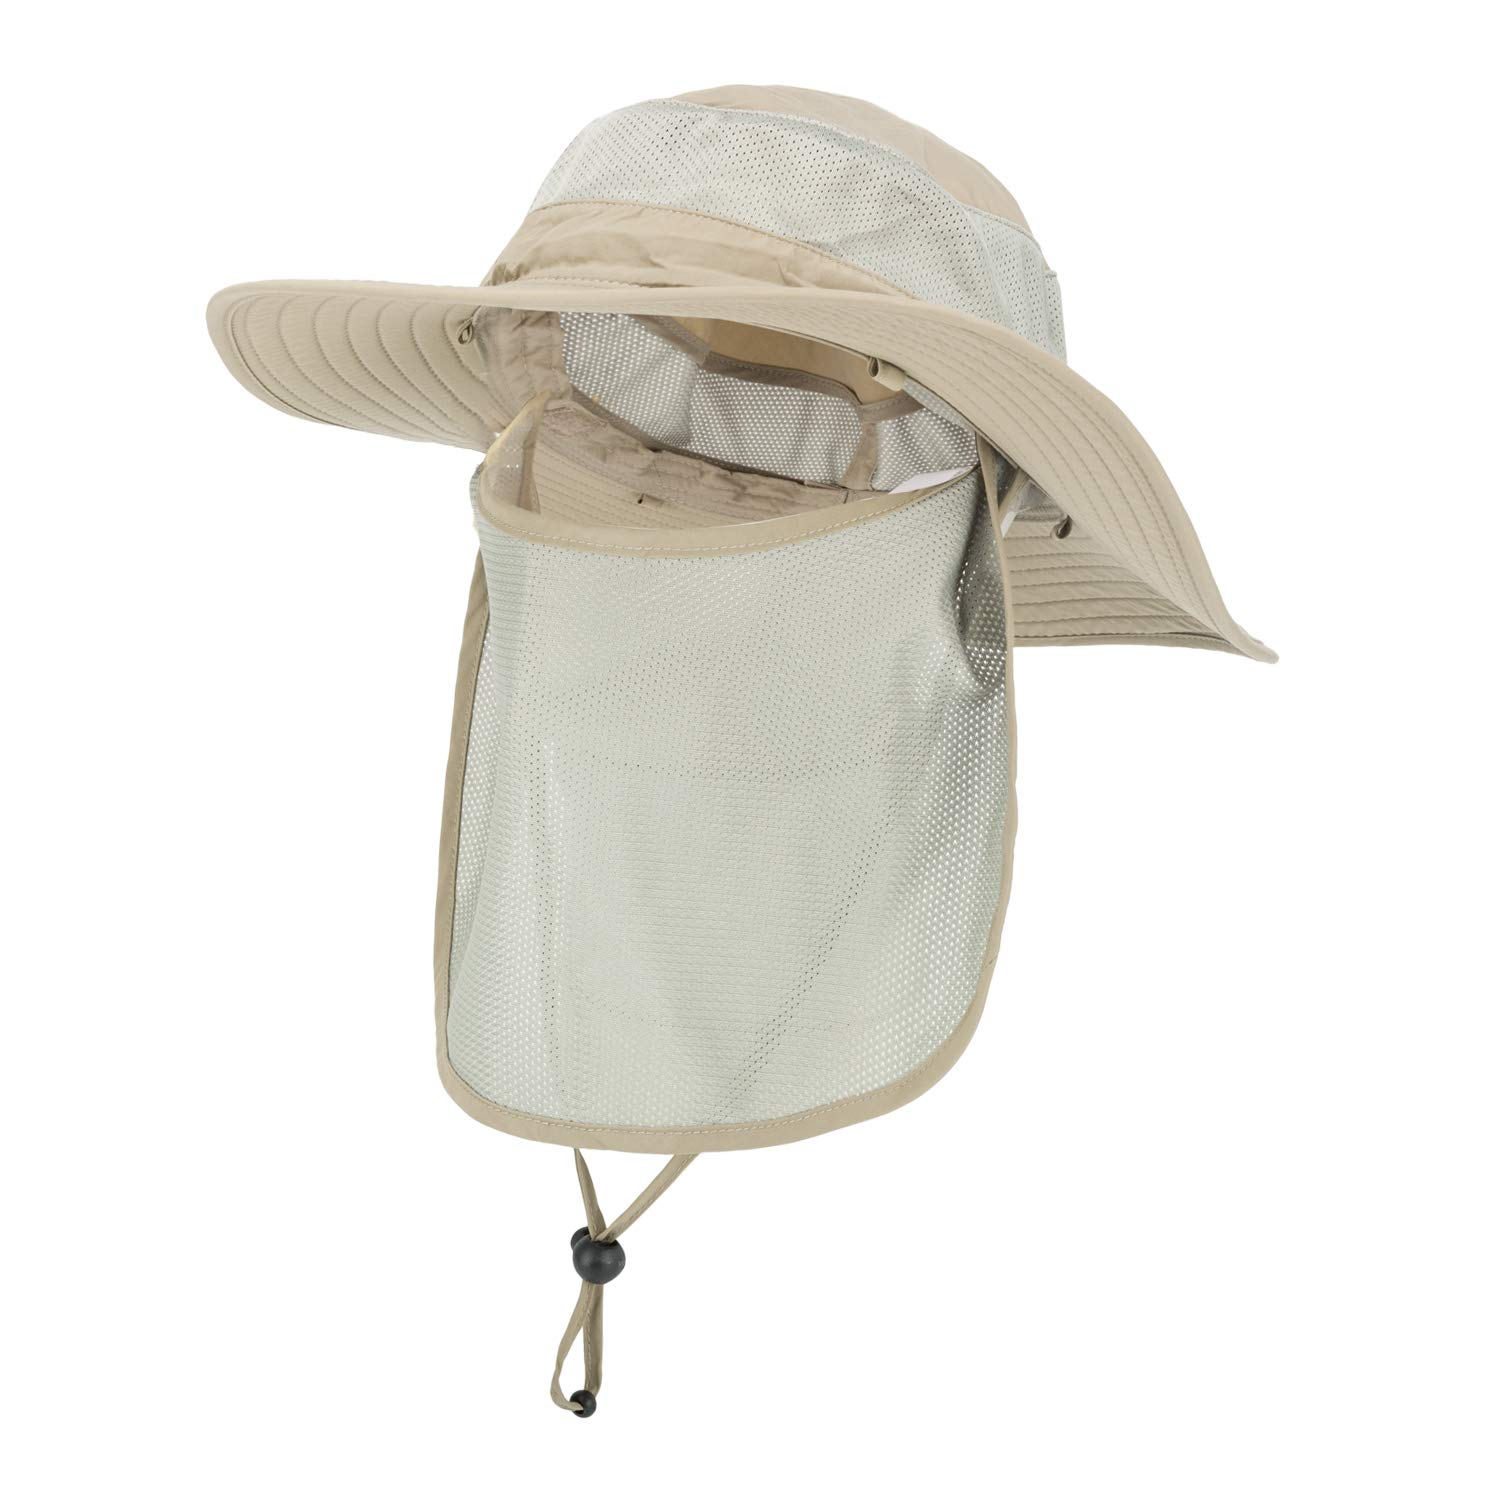 ASY Outdoor Sun Hat UPF 50 Protection Boonie Waterproof Fishing Cap for Men /& Women Face Cover Summer Removable Mesh Neck Face Flap Hat